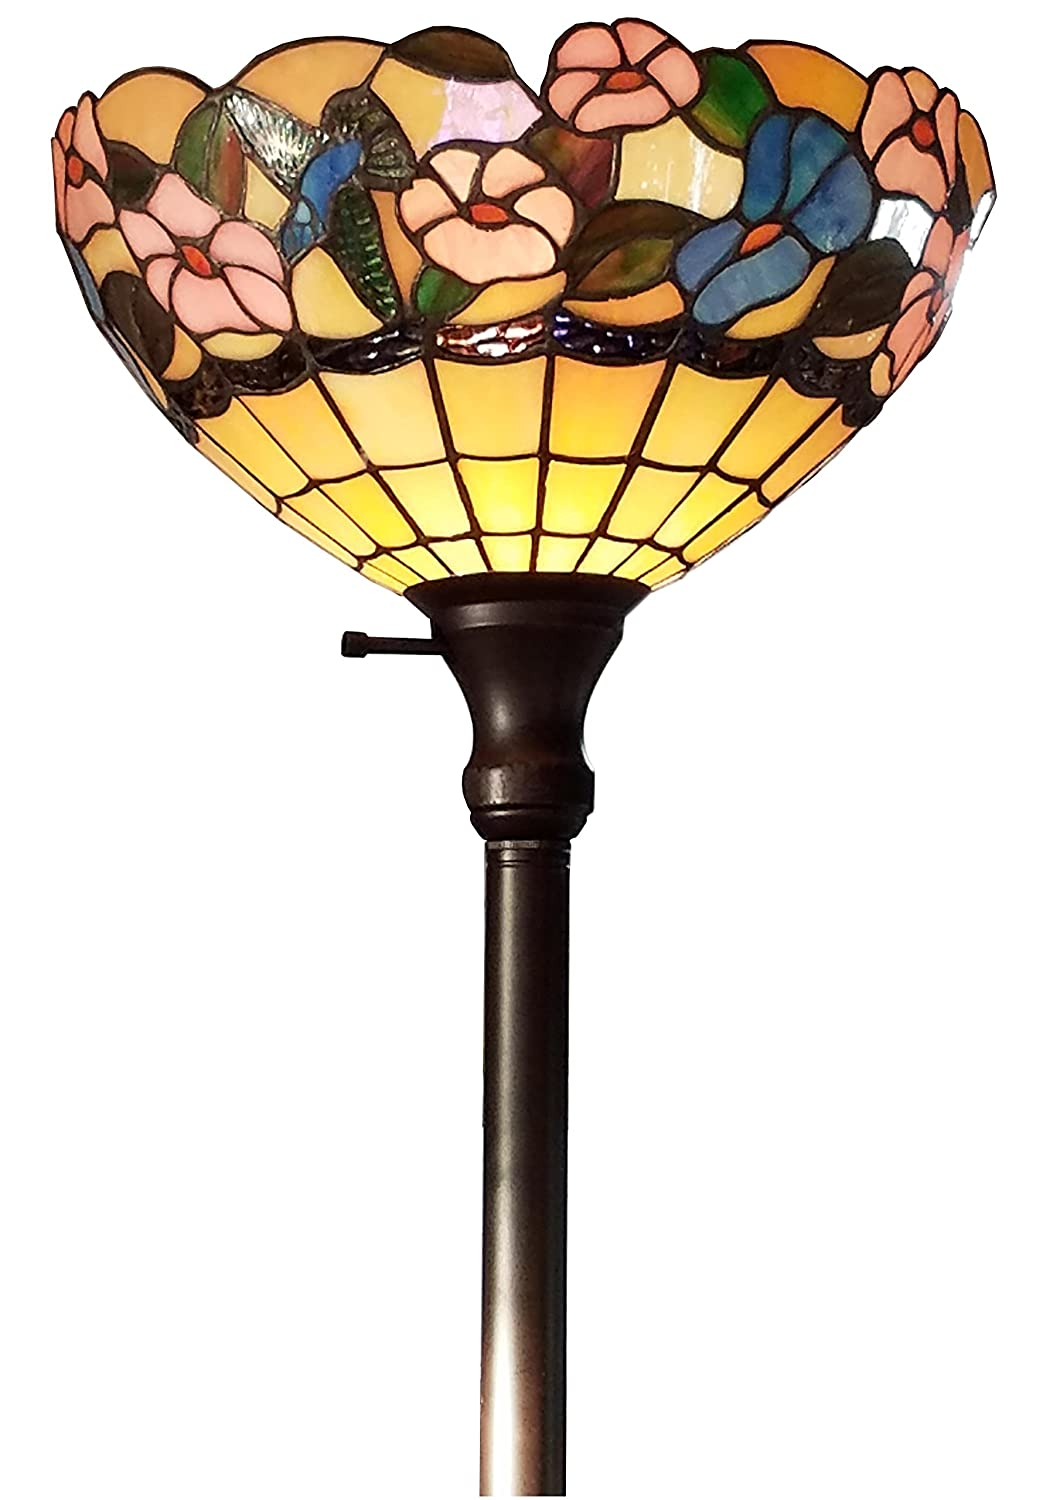 Amora lighting tiffany style am023fl14 hummingbirds floral amora lighting tiffany style am023fl14 hummingbirds floral torchiere floor lamp 70 inches tall amazon aloadofball Choice Image